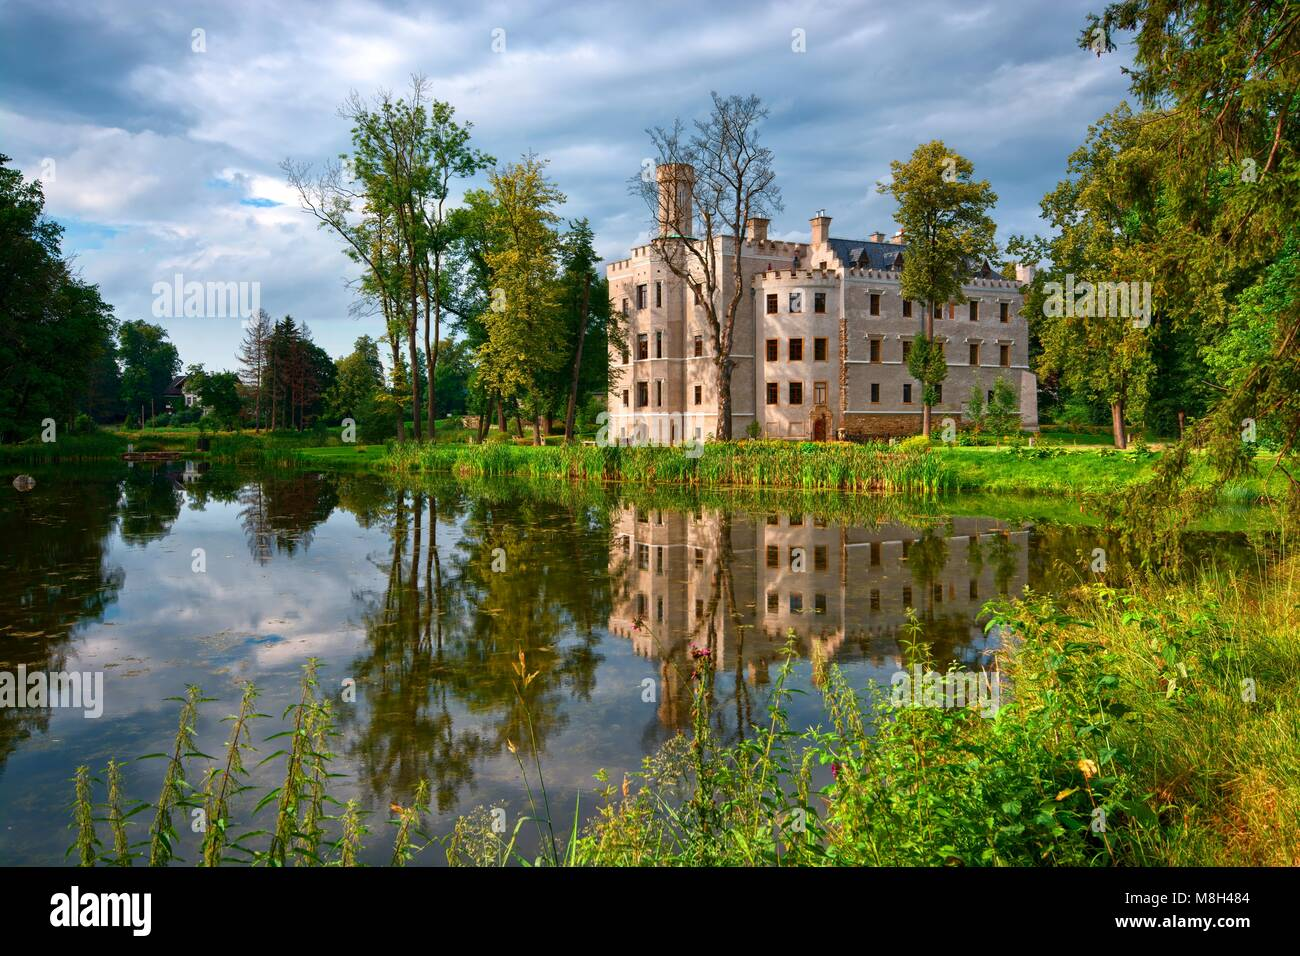 Neo gothic style castle surrounded by an english landscape garden in neo gothic style castle surrounded by an english landscape garden in karpniki poland workwithnaturefo